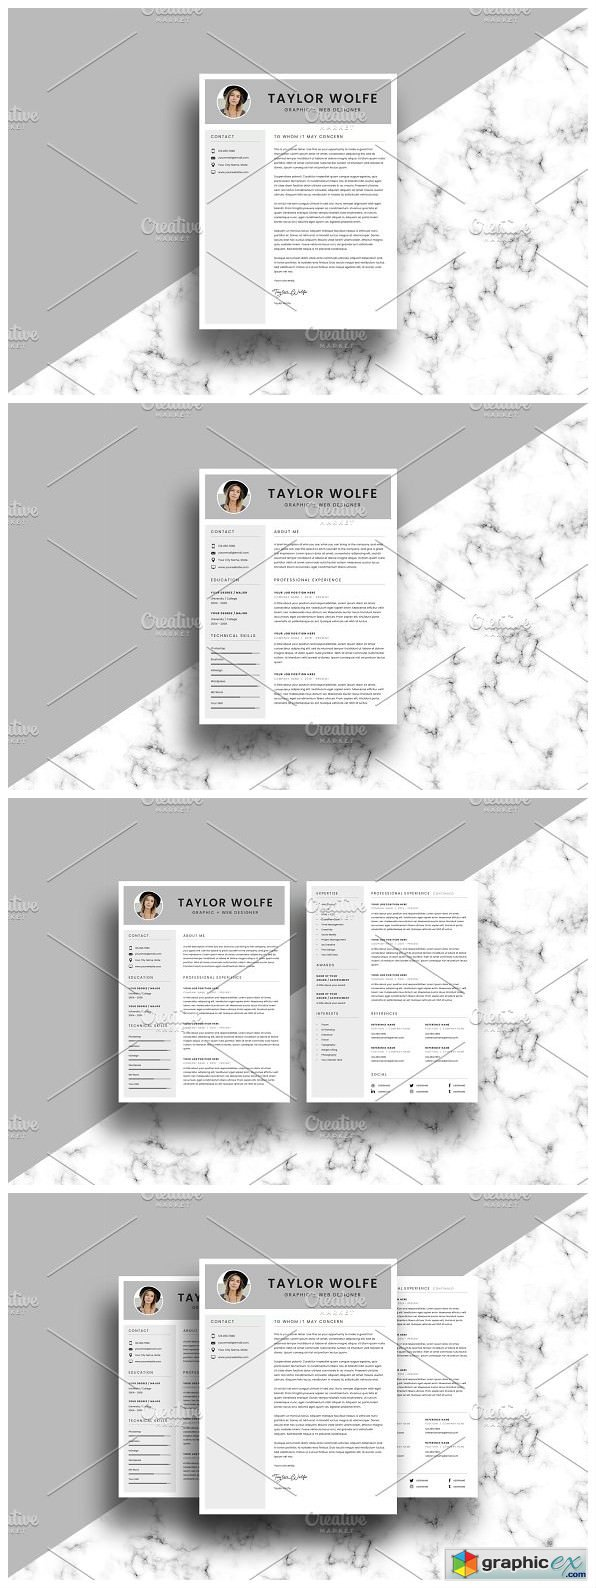 Resume CV Template - 3 Page - Taylor